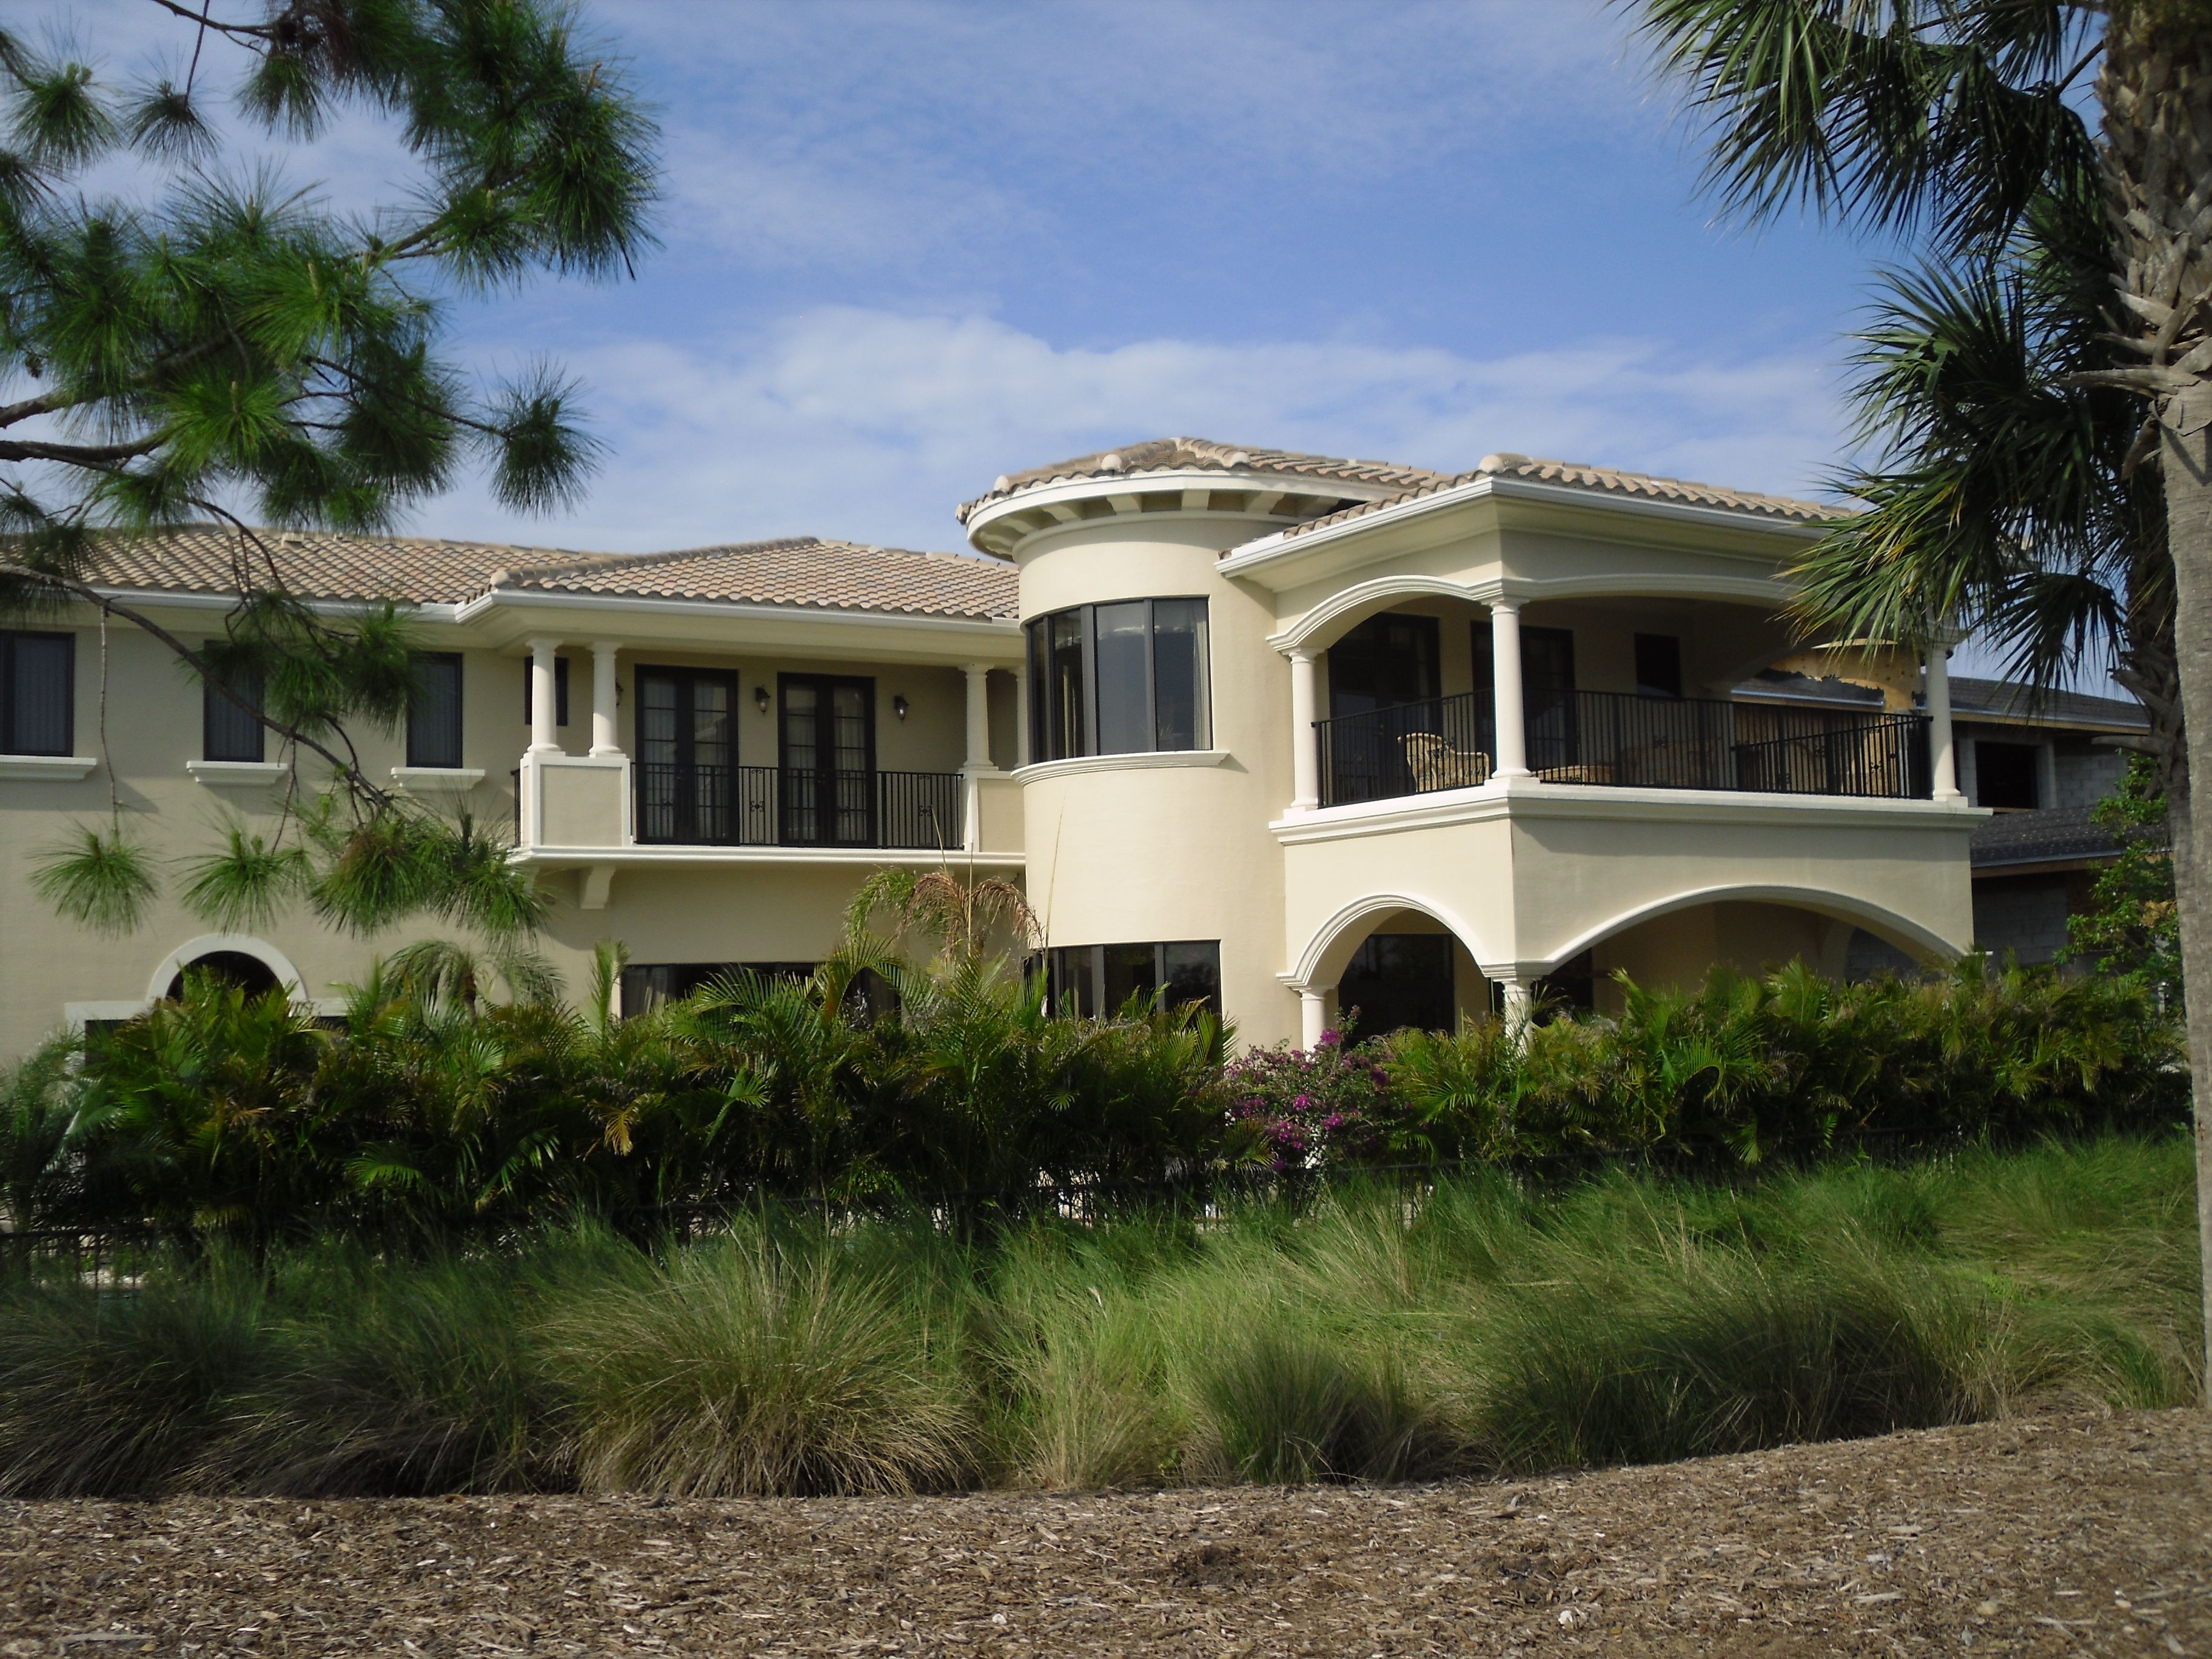 337c391ccdad625cb36d4eec07c3260a - Palm Beach Gardens Cost Of Living